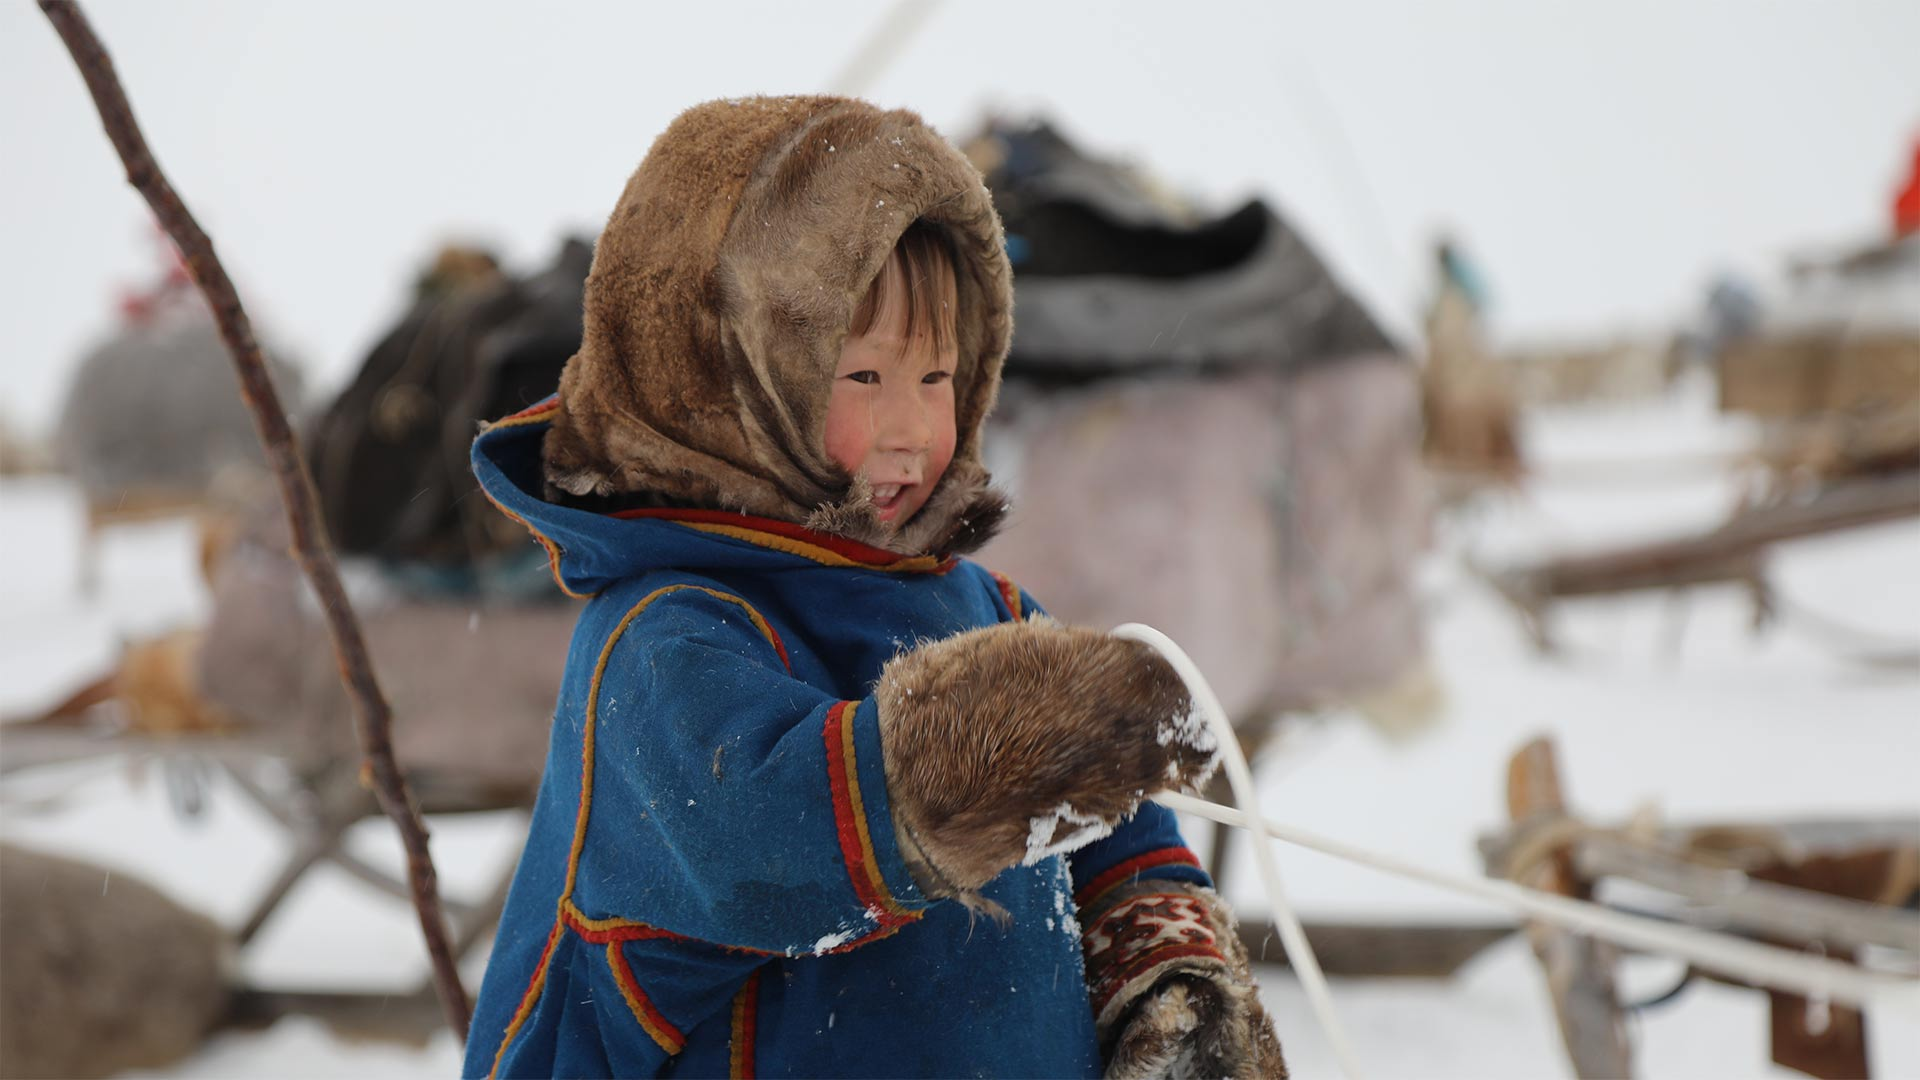 earth_nat_wonders_life_extremes_child_siberia_hero